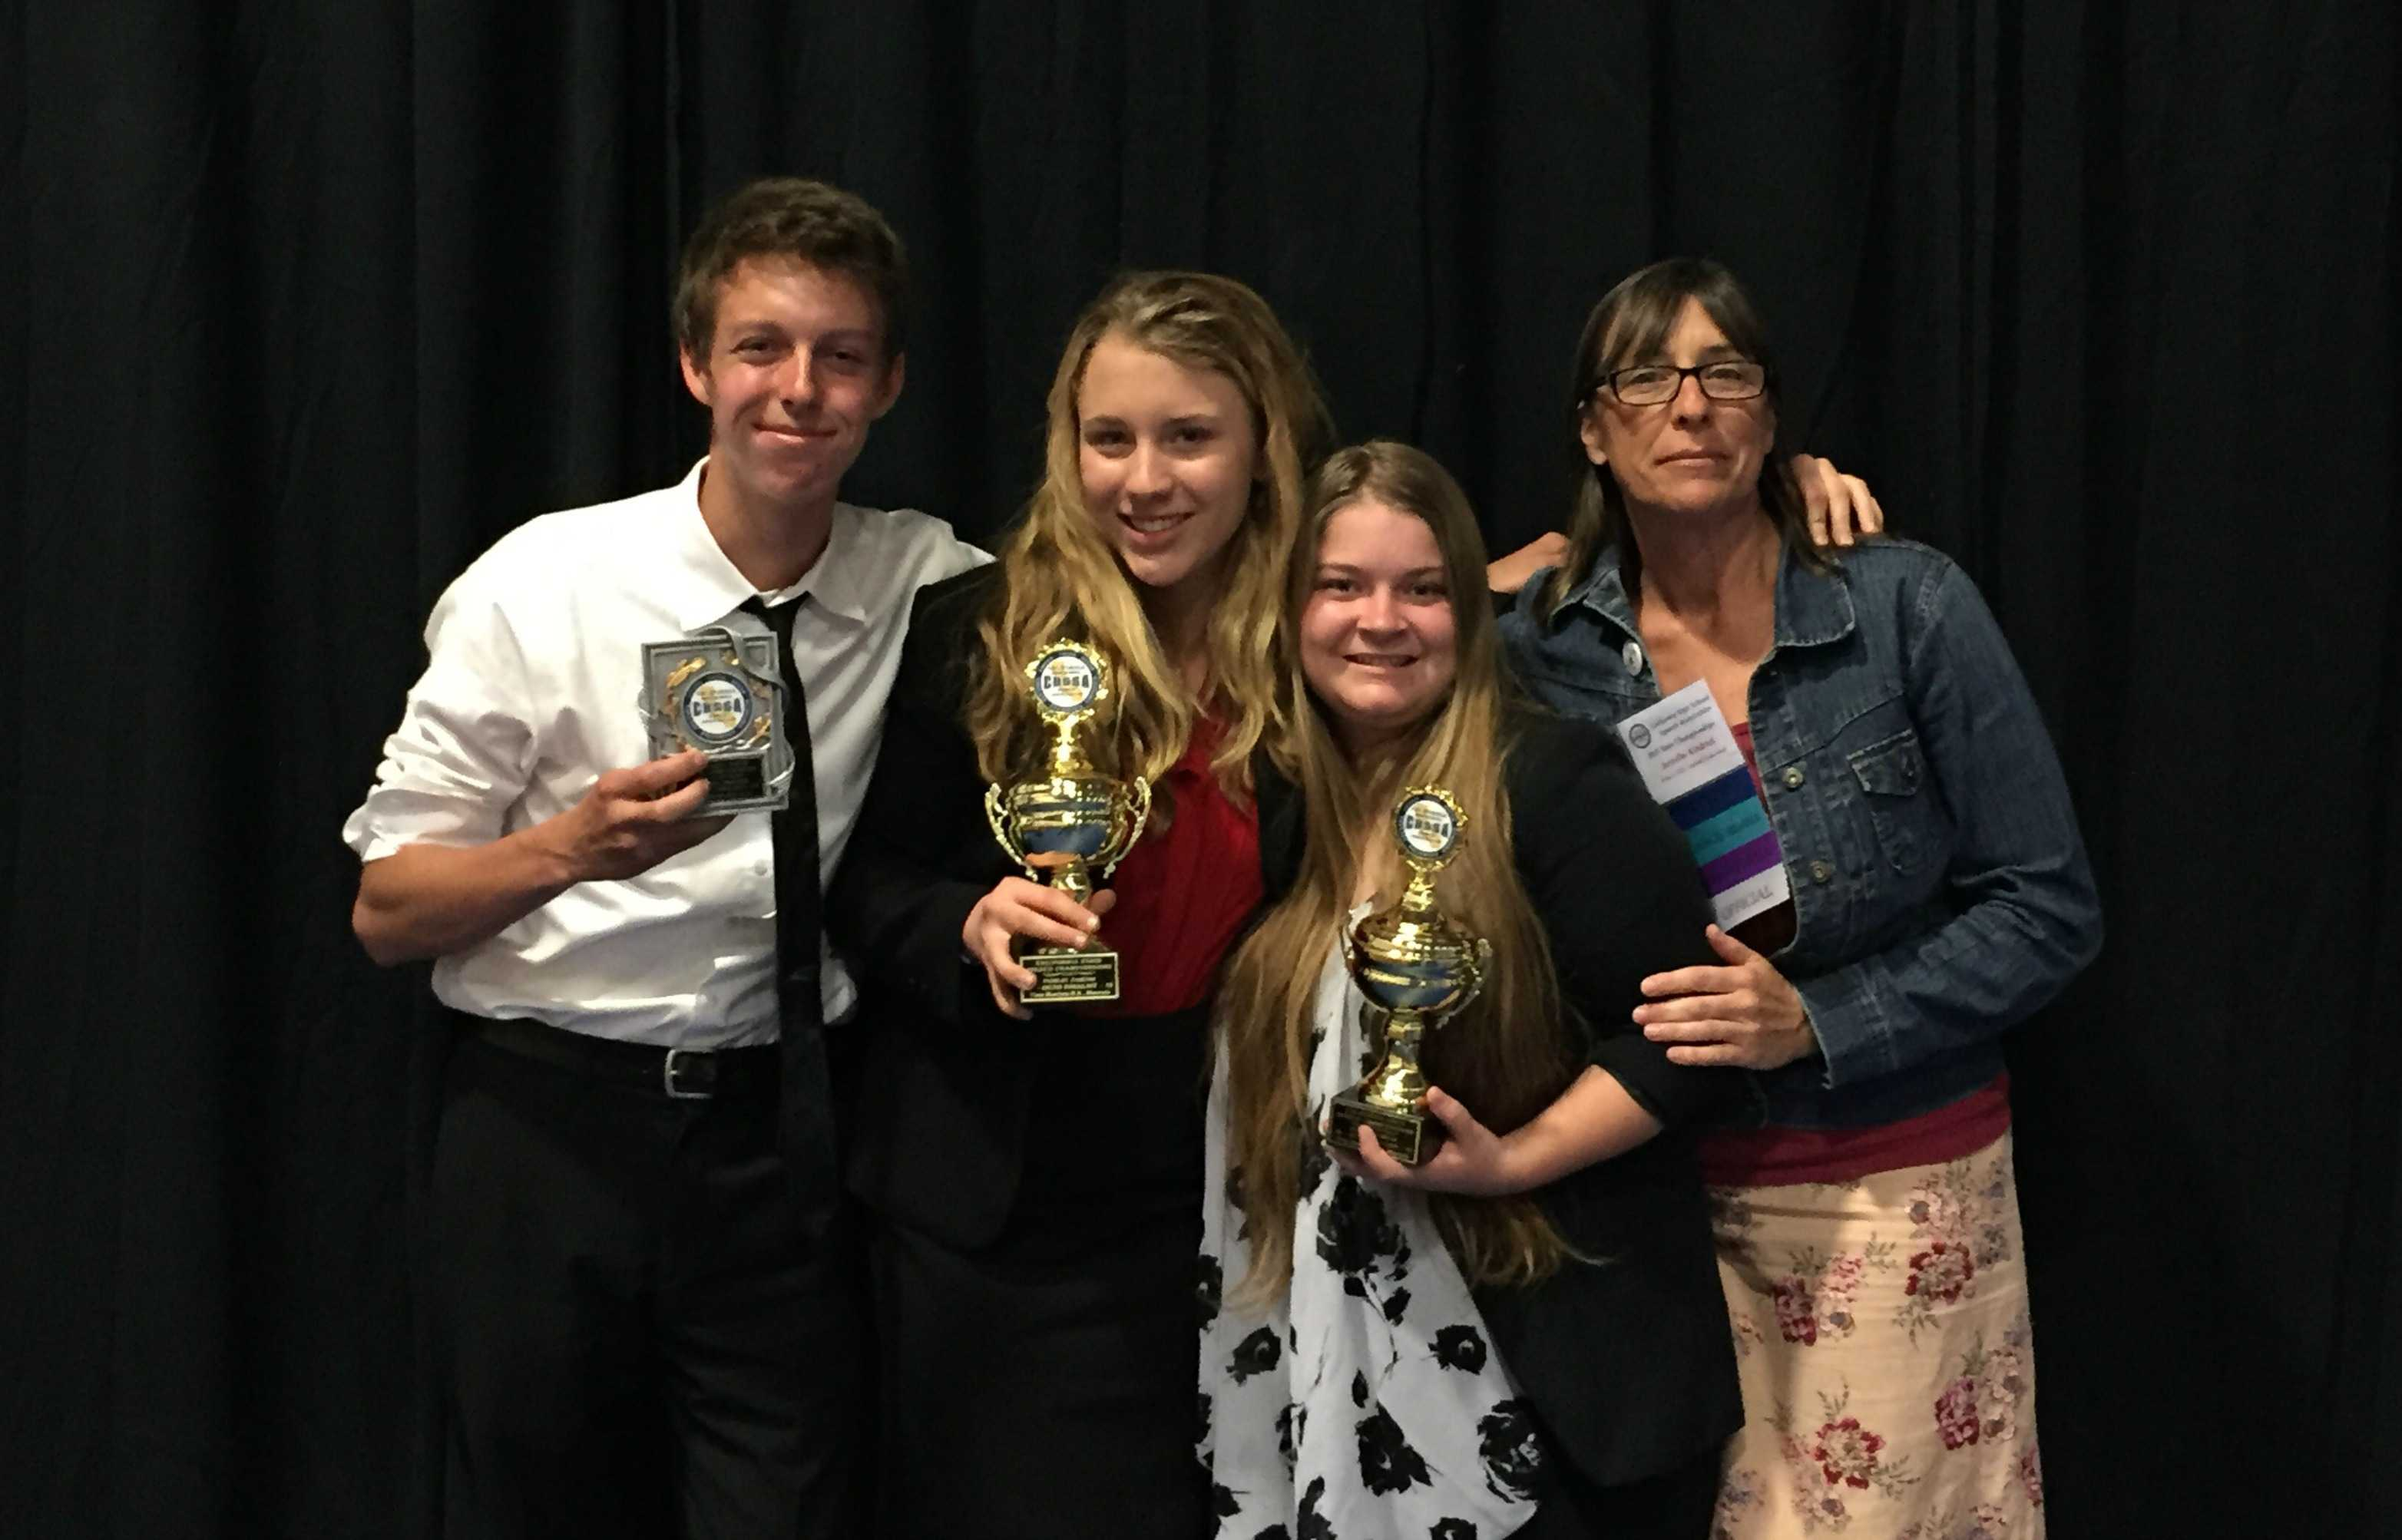 (From left to right) Senior Ben Limpich, junior Fidelity Ballmer, junior Khaila Hartung-Dallas and Speech and Debate coach Jennifer Kindred all went to the state tournament at Murrieta High School. Photo courtesy of Jennifer Kindred.